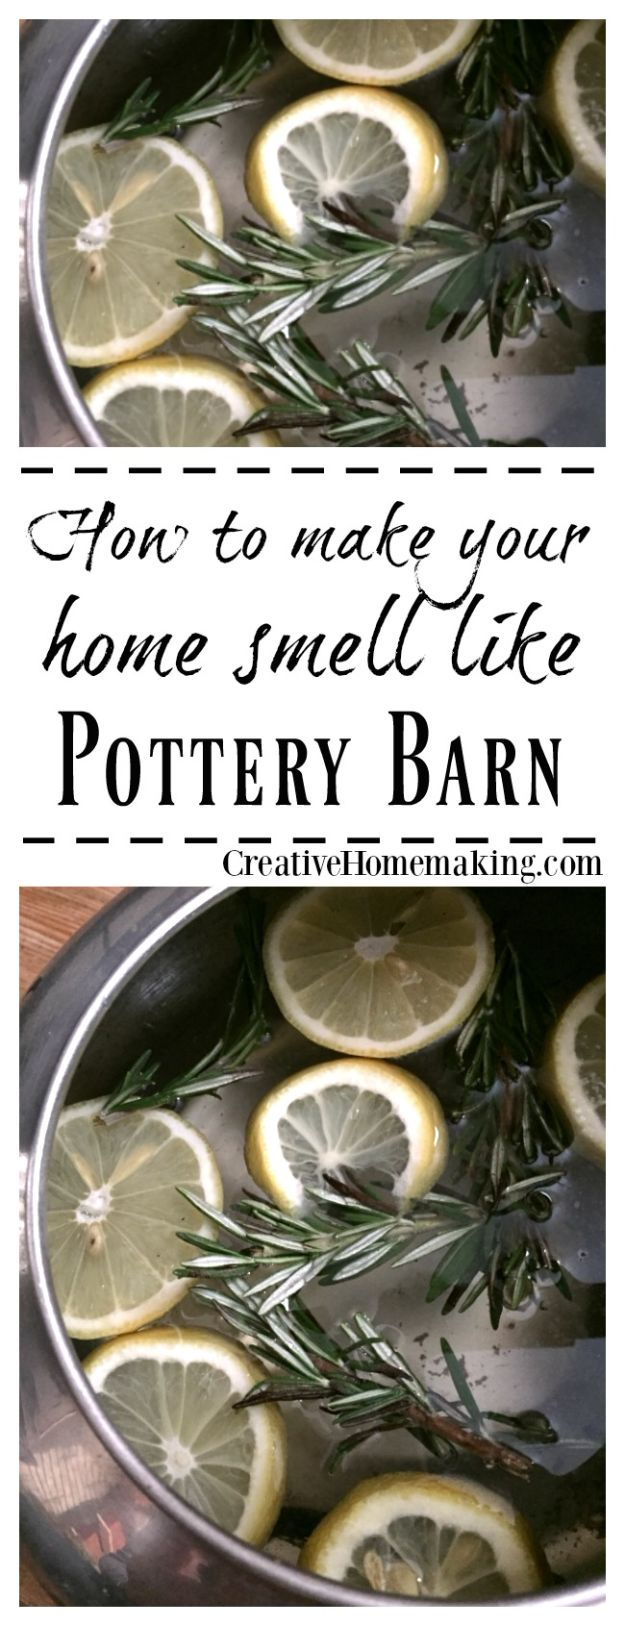 DIY Home Fragrance Ideas - Make Your House Smell Like Pottery Barn - Easy Ways To Make your House and Home Smell Good - Essential Oils, Diffusers, DIY Lampe Berger Oil, Candles, Room Scents and Homemade Recipes for Odor Removal - Relaxing Lavender, Fresh Clean Smells, Lemon, Herb http://diyjoy.com/diy-home-fragrance-ideas